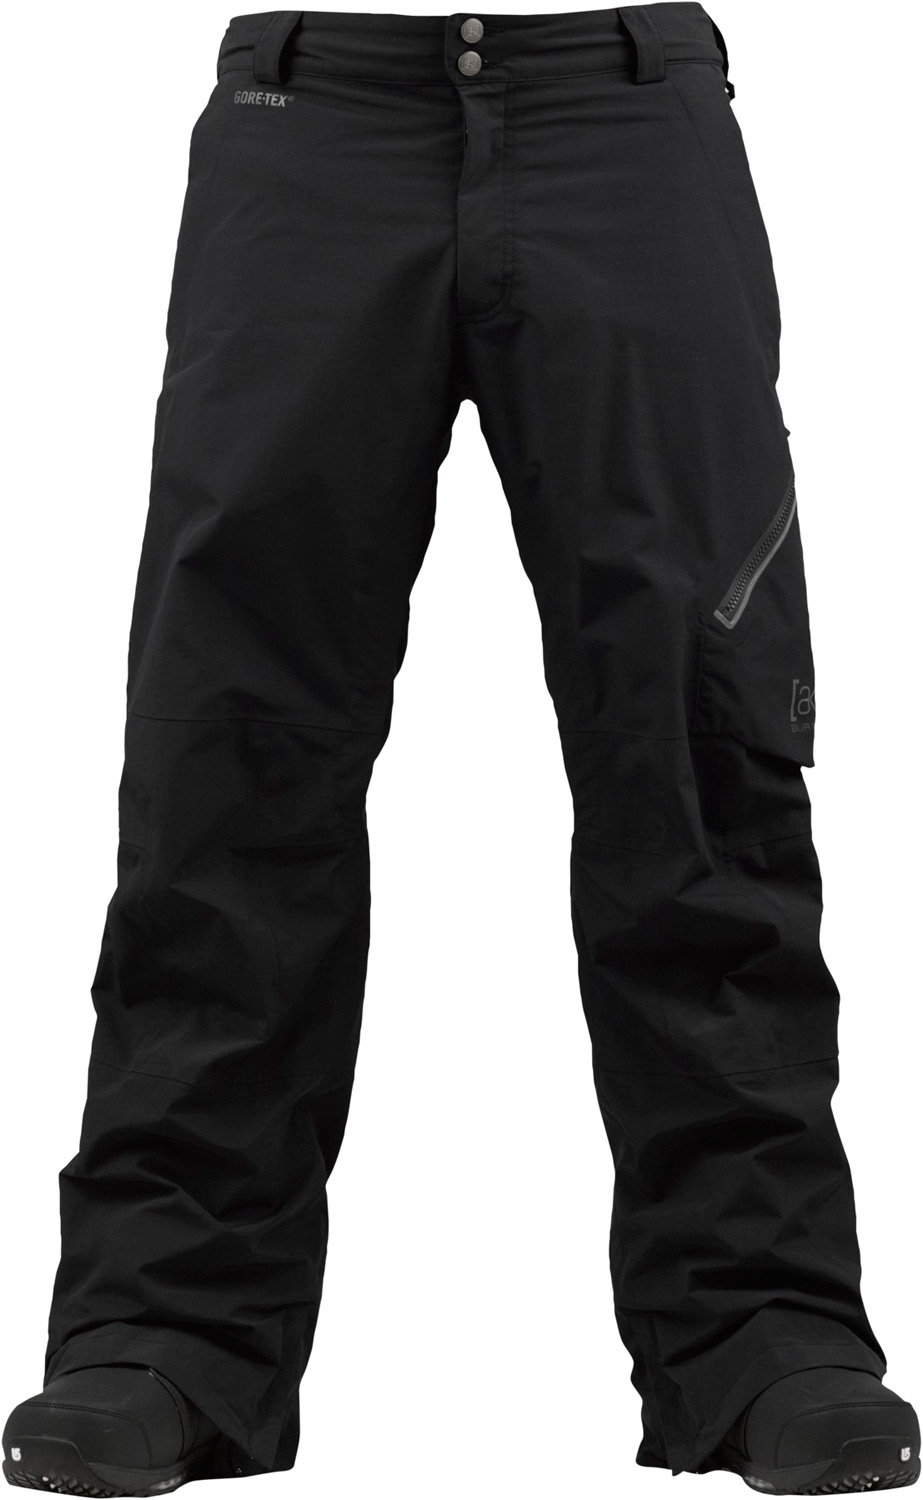 Snowboard Step up to the [ak] advantage. Mandatory GOre-teX fabric performance for the 100-day season.Key Features of the Burton AK 2L Cyclic Snowboard Pants: Waterproofing: Gore-Tex® Fabric (2-Layer) Fully taped seams with Gore-Seam® tape [13MM] Warmth: mapped with Mesh Lining [ak] Fit with engineered articulation YKK® Matte water-resistant Zippers Zippered Cargo Pocket Light reflective Detailing Lifetime warranty Includes Men's [ak] Pant Features Package GORE-TEX® Fabric Fully Taped Seams with GORE-SEAM® Tape [ak] Fit with Engineered Articulation Inner Thigh Vents Integrated Waist Adjustment [ak] Logo Fly Shanks Ghetto Slits Snap-Up Leg Lifts™—Keep Your Cuffs Scuff-Free Lifetime Warranty Zippered, Microfleece-Lined Handwarmer Pockets Jacket-to-Pant Interface Boot Gaiter with Cuff-to-Boot Interface Headphone Cable Port - $216.95